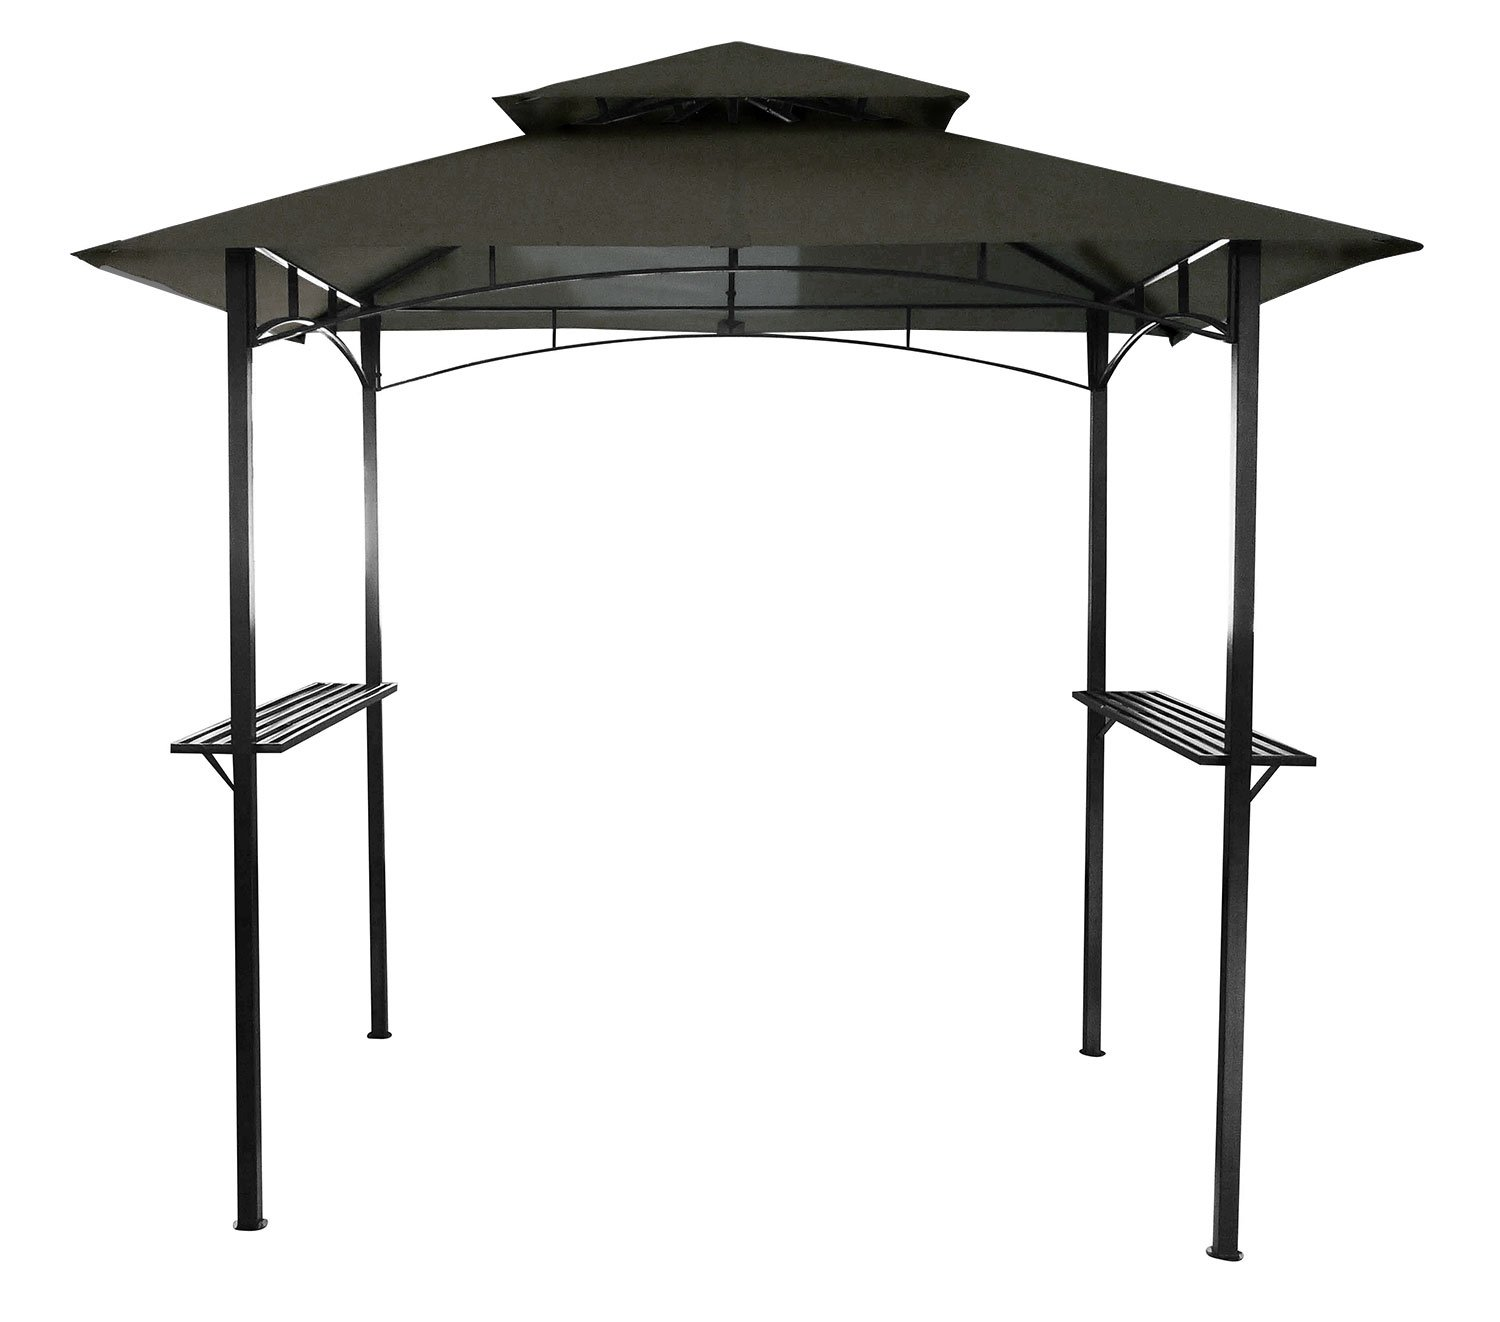 Bentley - Toldo para barbacoa de 2, 4 x 1, 5 m - Gris: Amazon.es ...